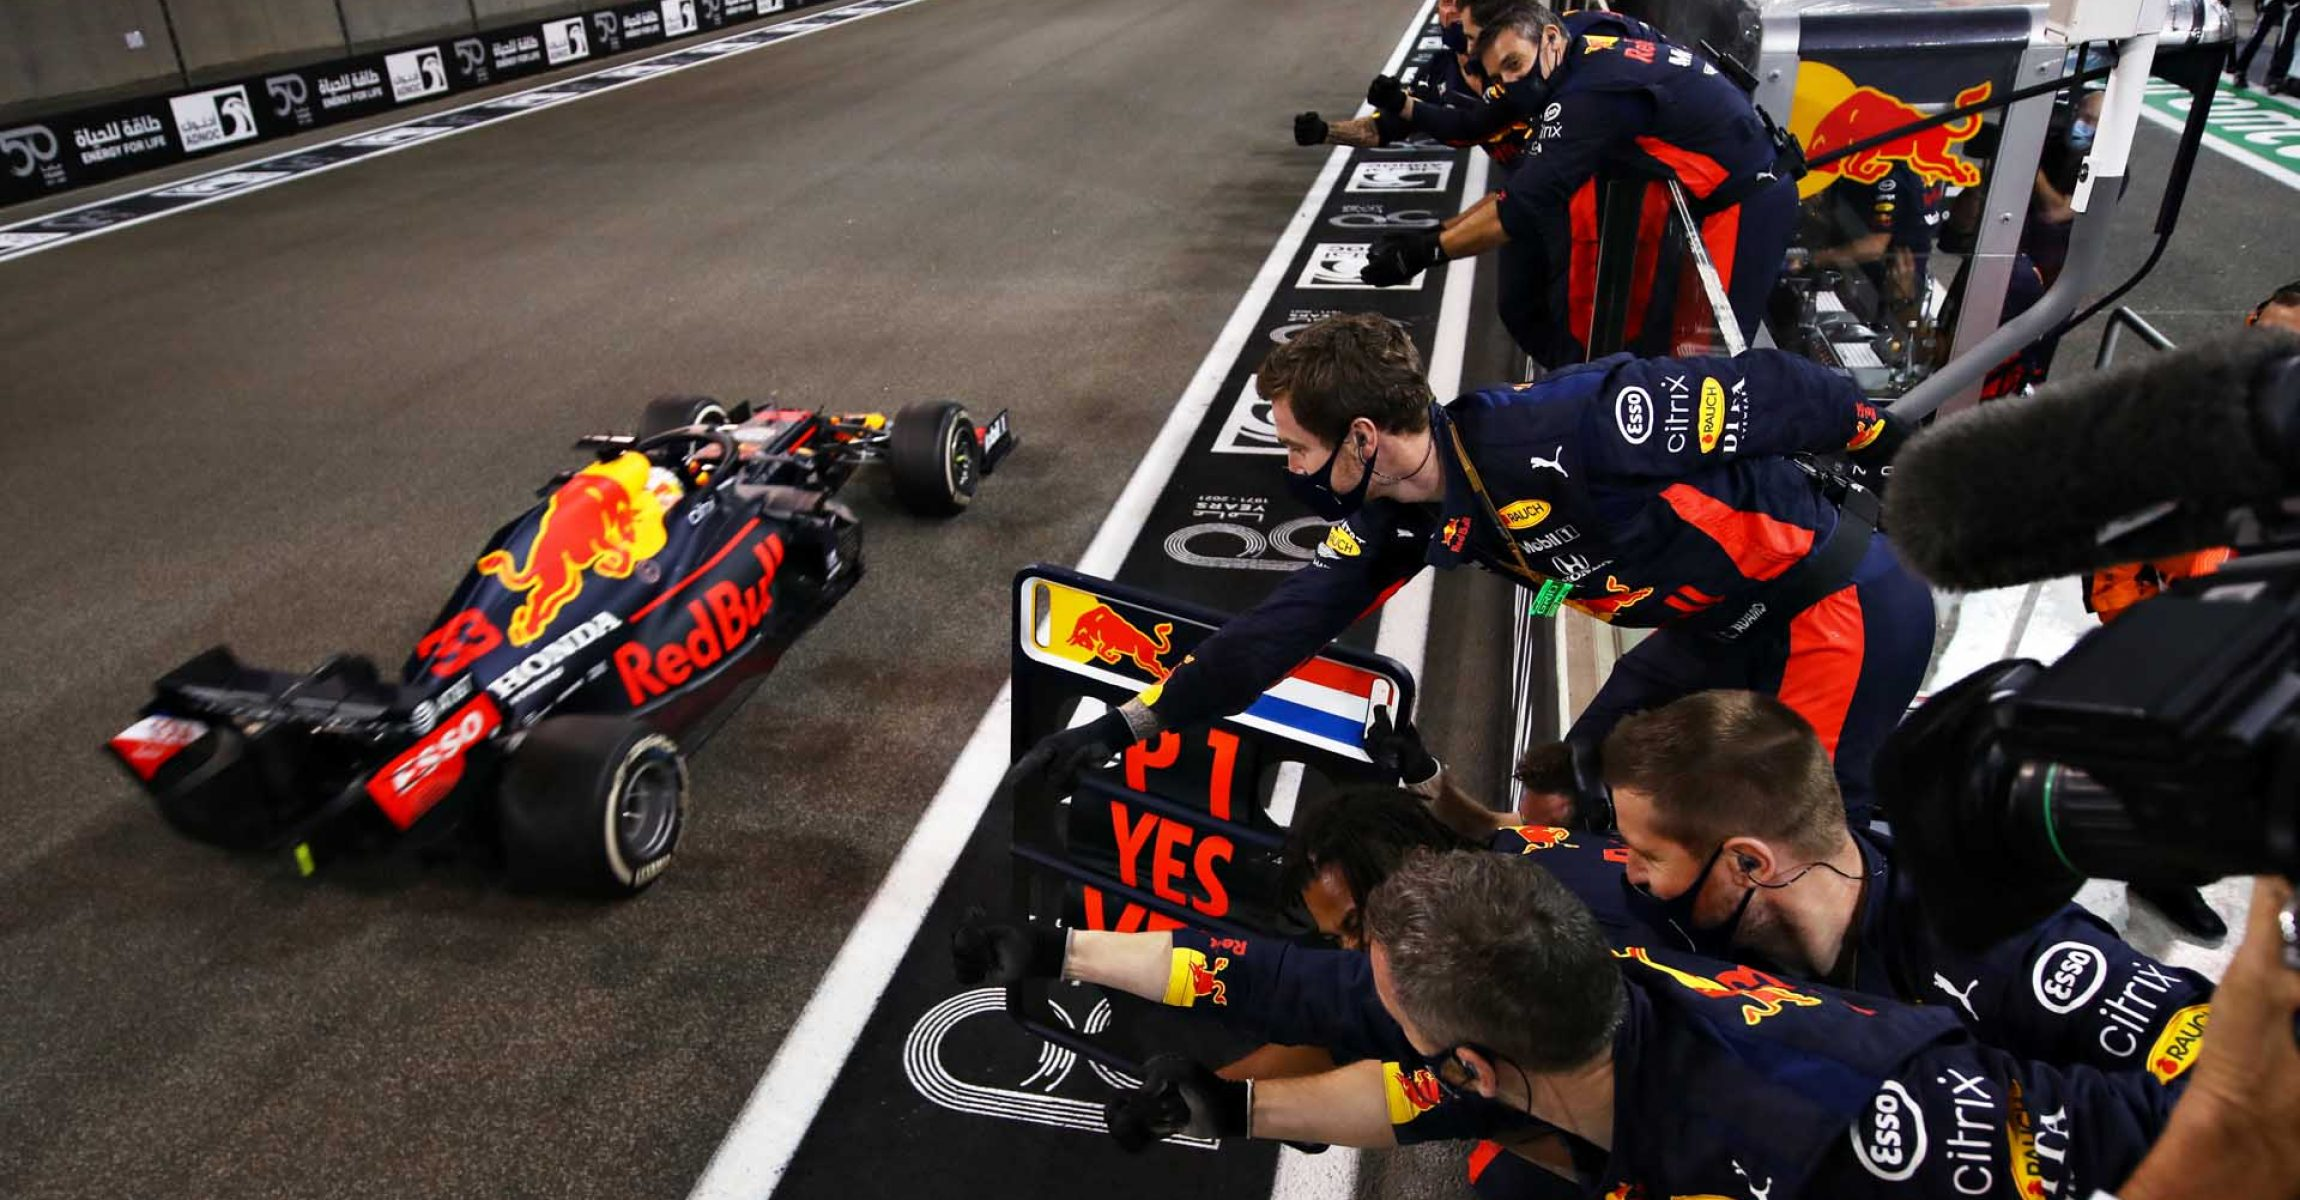 ABU DHABI, UNITED ARAB EMIRATES - DECEMBER 13: Race winner Max Verstappen of the Netherlands driving the (33) Aston Martin Red Bull Racing RB16 passes his team celebrating on the pitwall during the F1 Grand Prix of Abu Dhabi at Yas Marina Circuit on December 13, 2020 in Abu Dhabi, United Arab Emirates. (Photo by Mark Thompson/Getty Images)